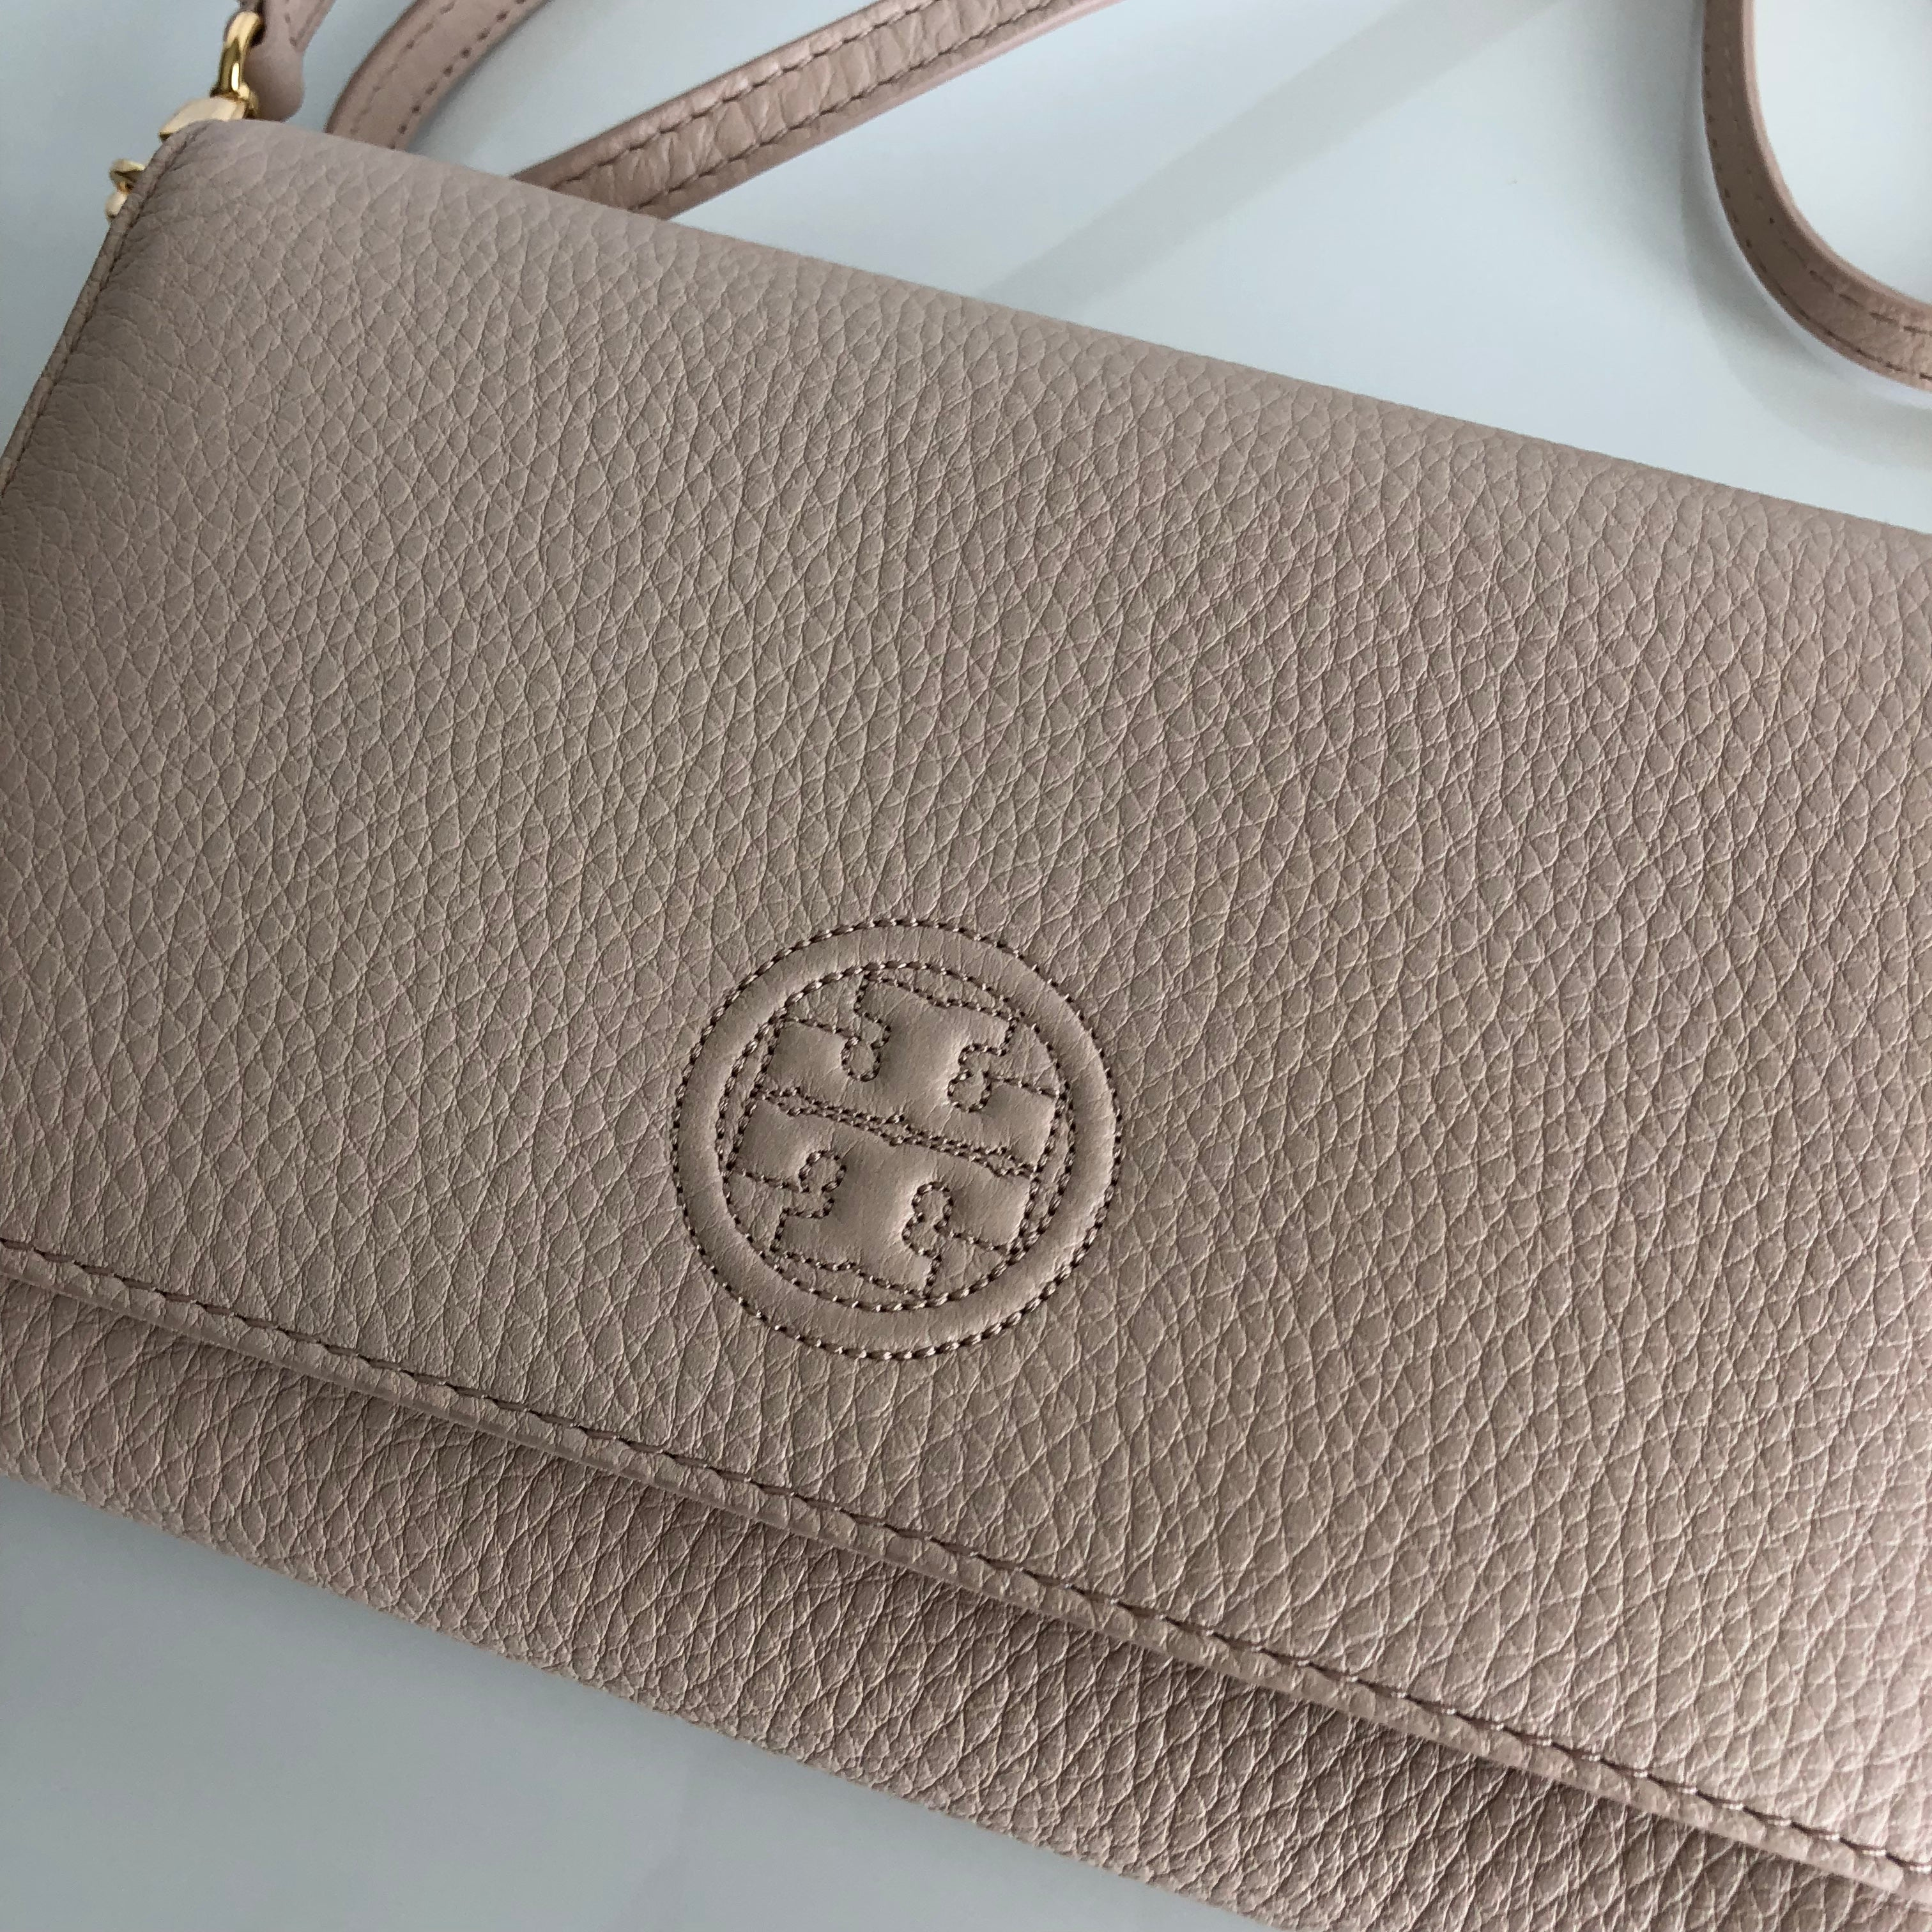 Authentic TORY BURCH Bombe Wallet Crossbody